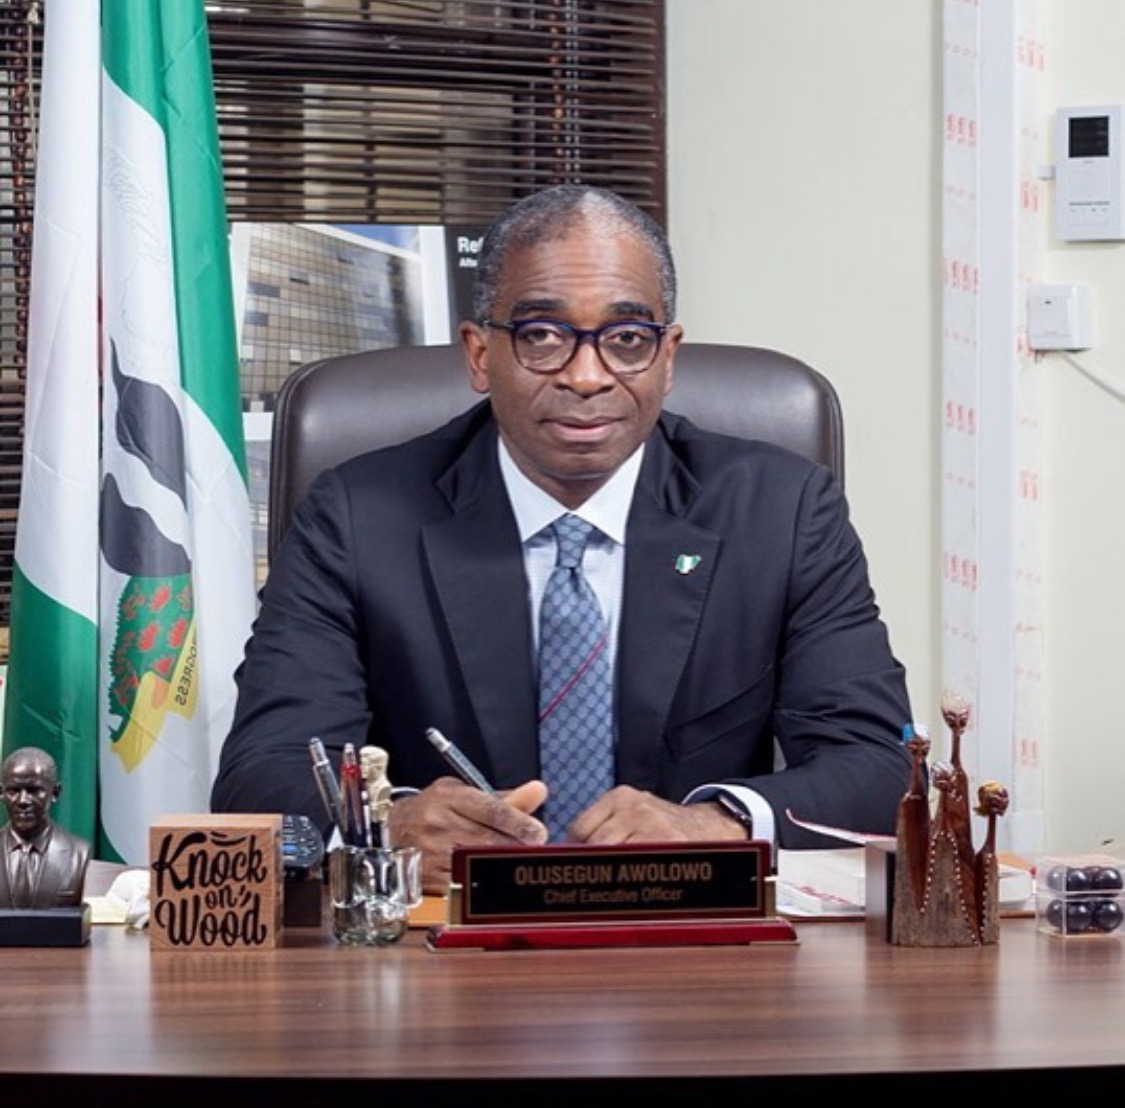 Olusegun Awolowo, Chief Executive Officer, Nigeria Export Promotion Council